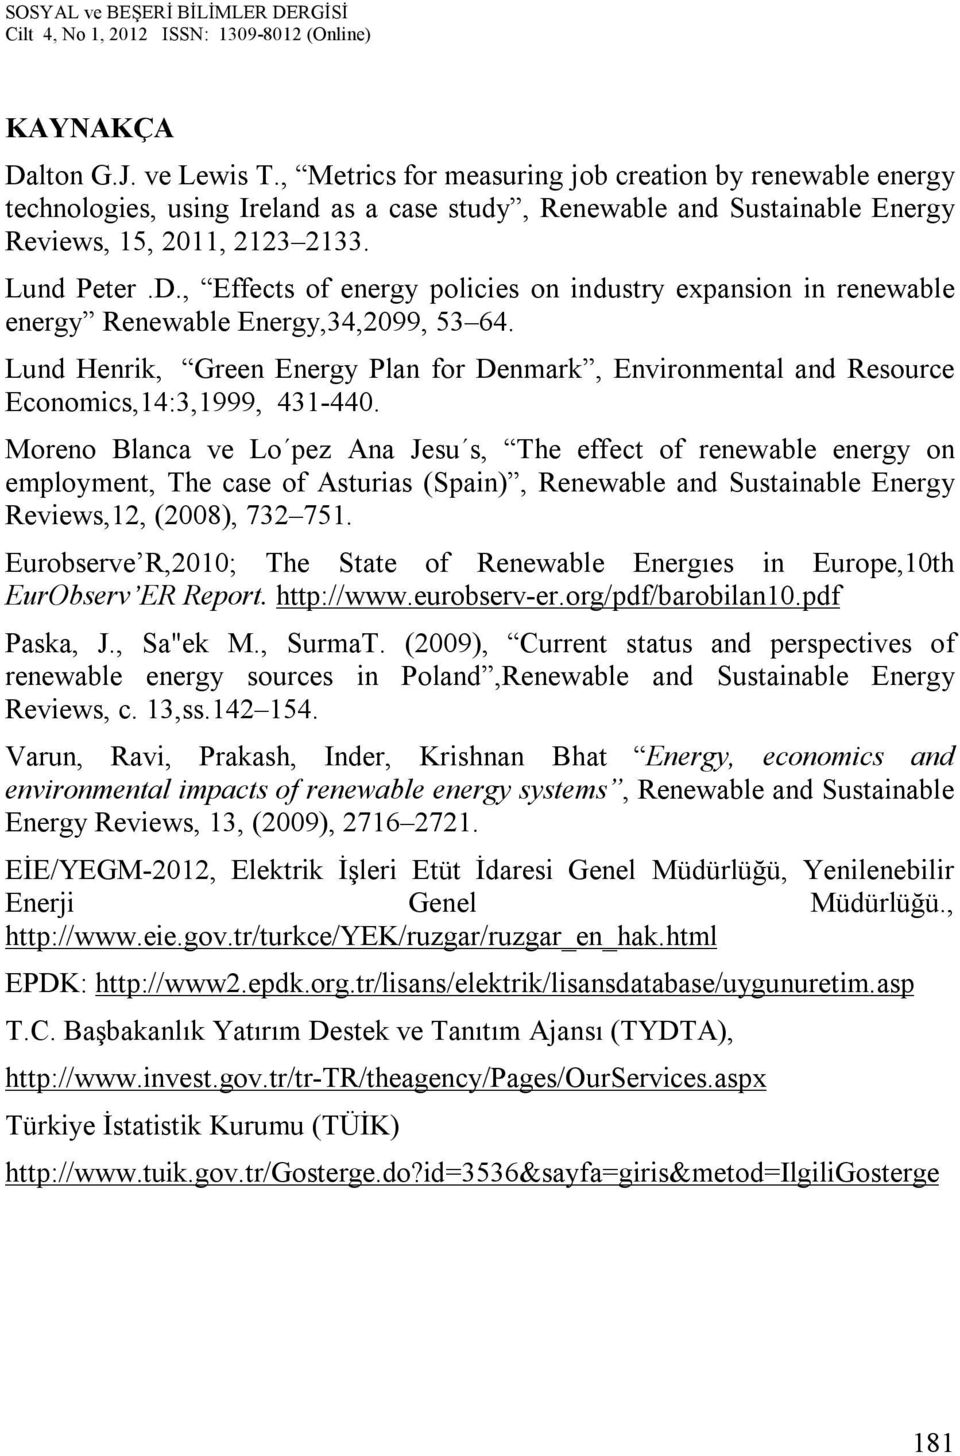 Lund Henrik, Green Energy Plan for Denmark, Environmental and Resource Economics,14:3,1999, 431-440.